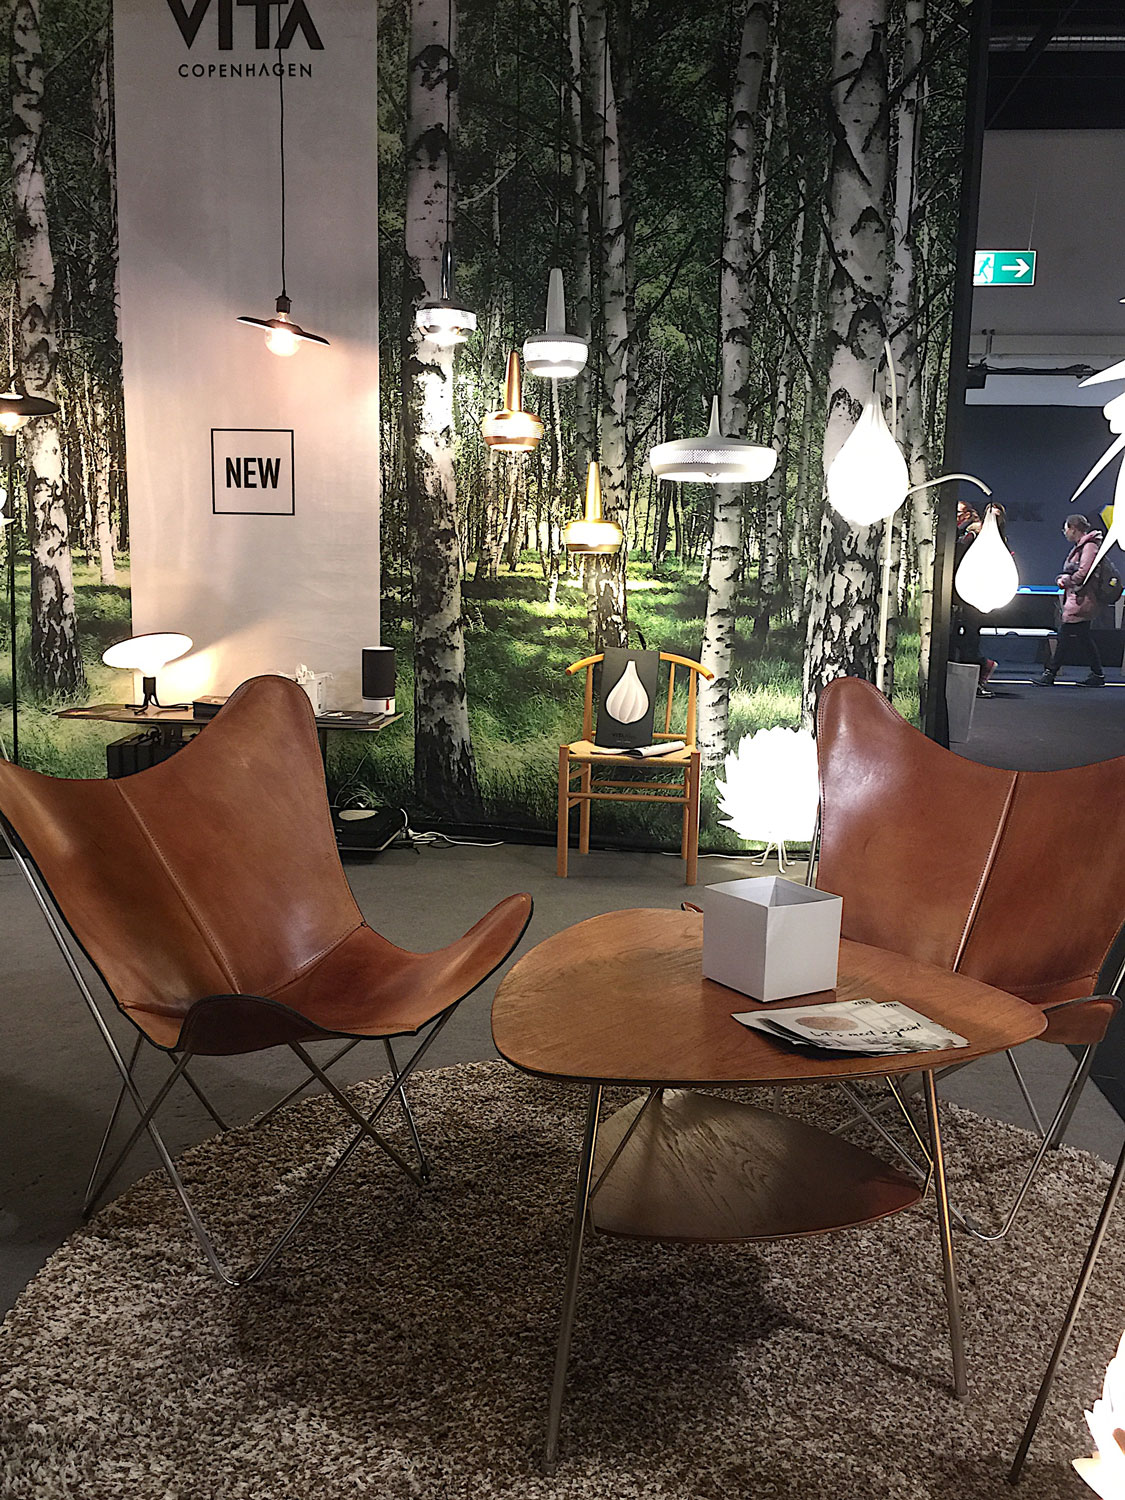 Imm Cologne 2017 trade fair interior trends leather chairs plants